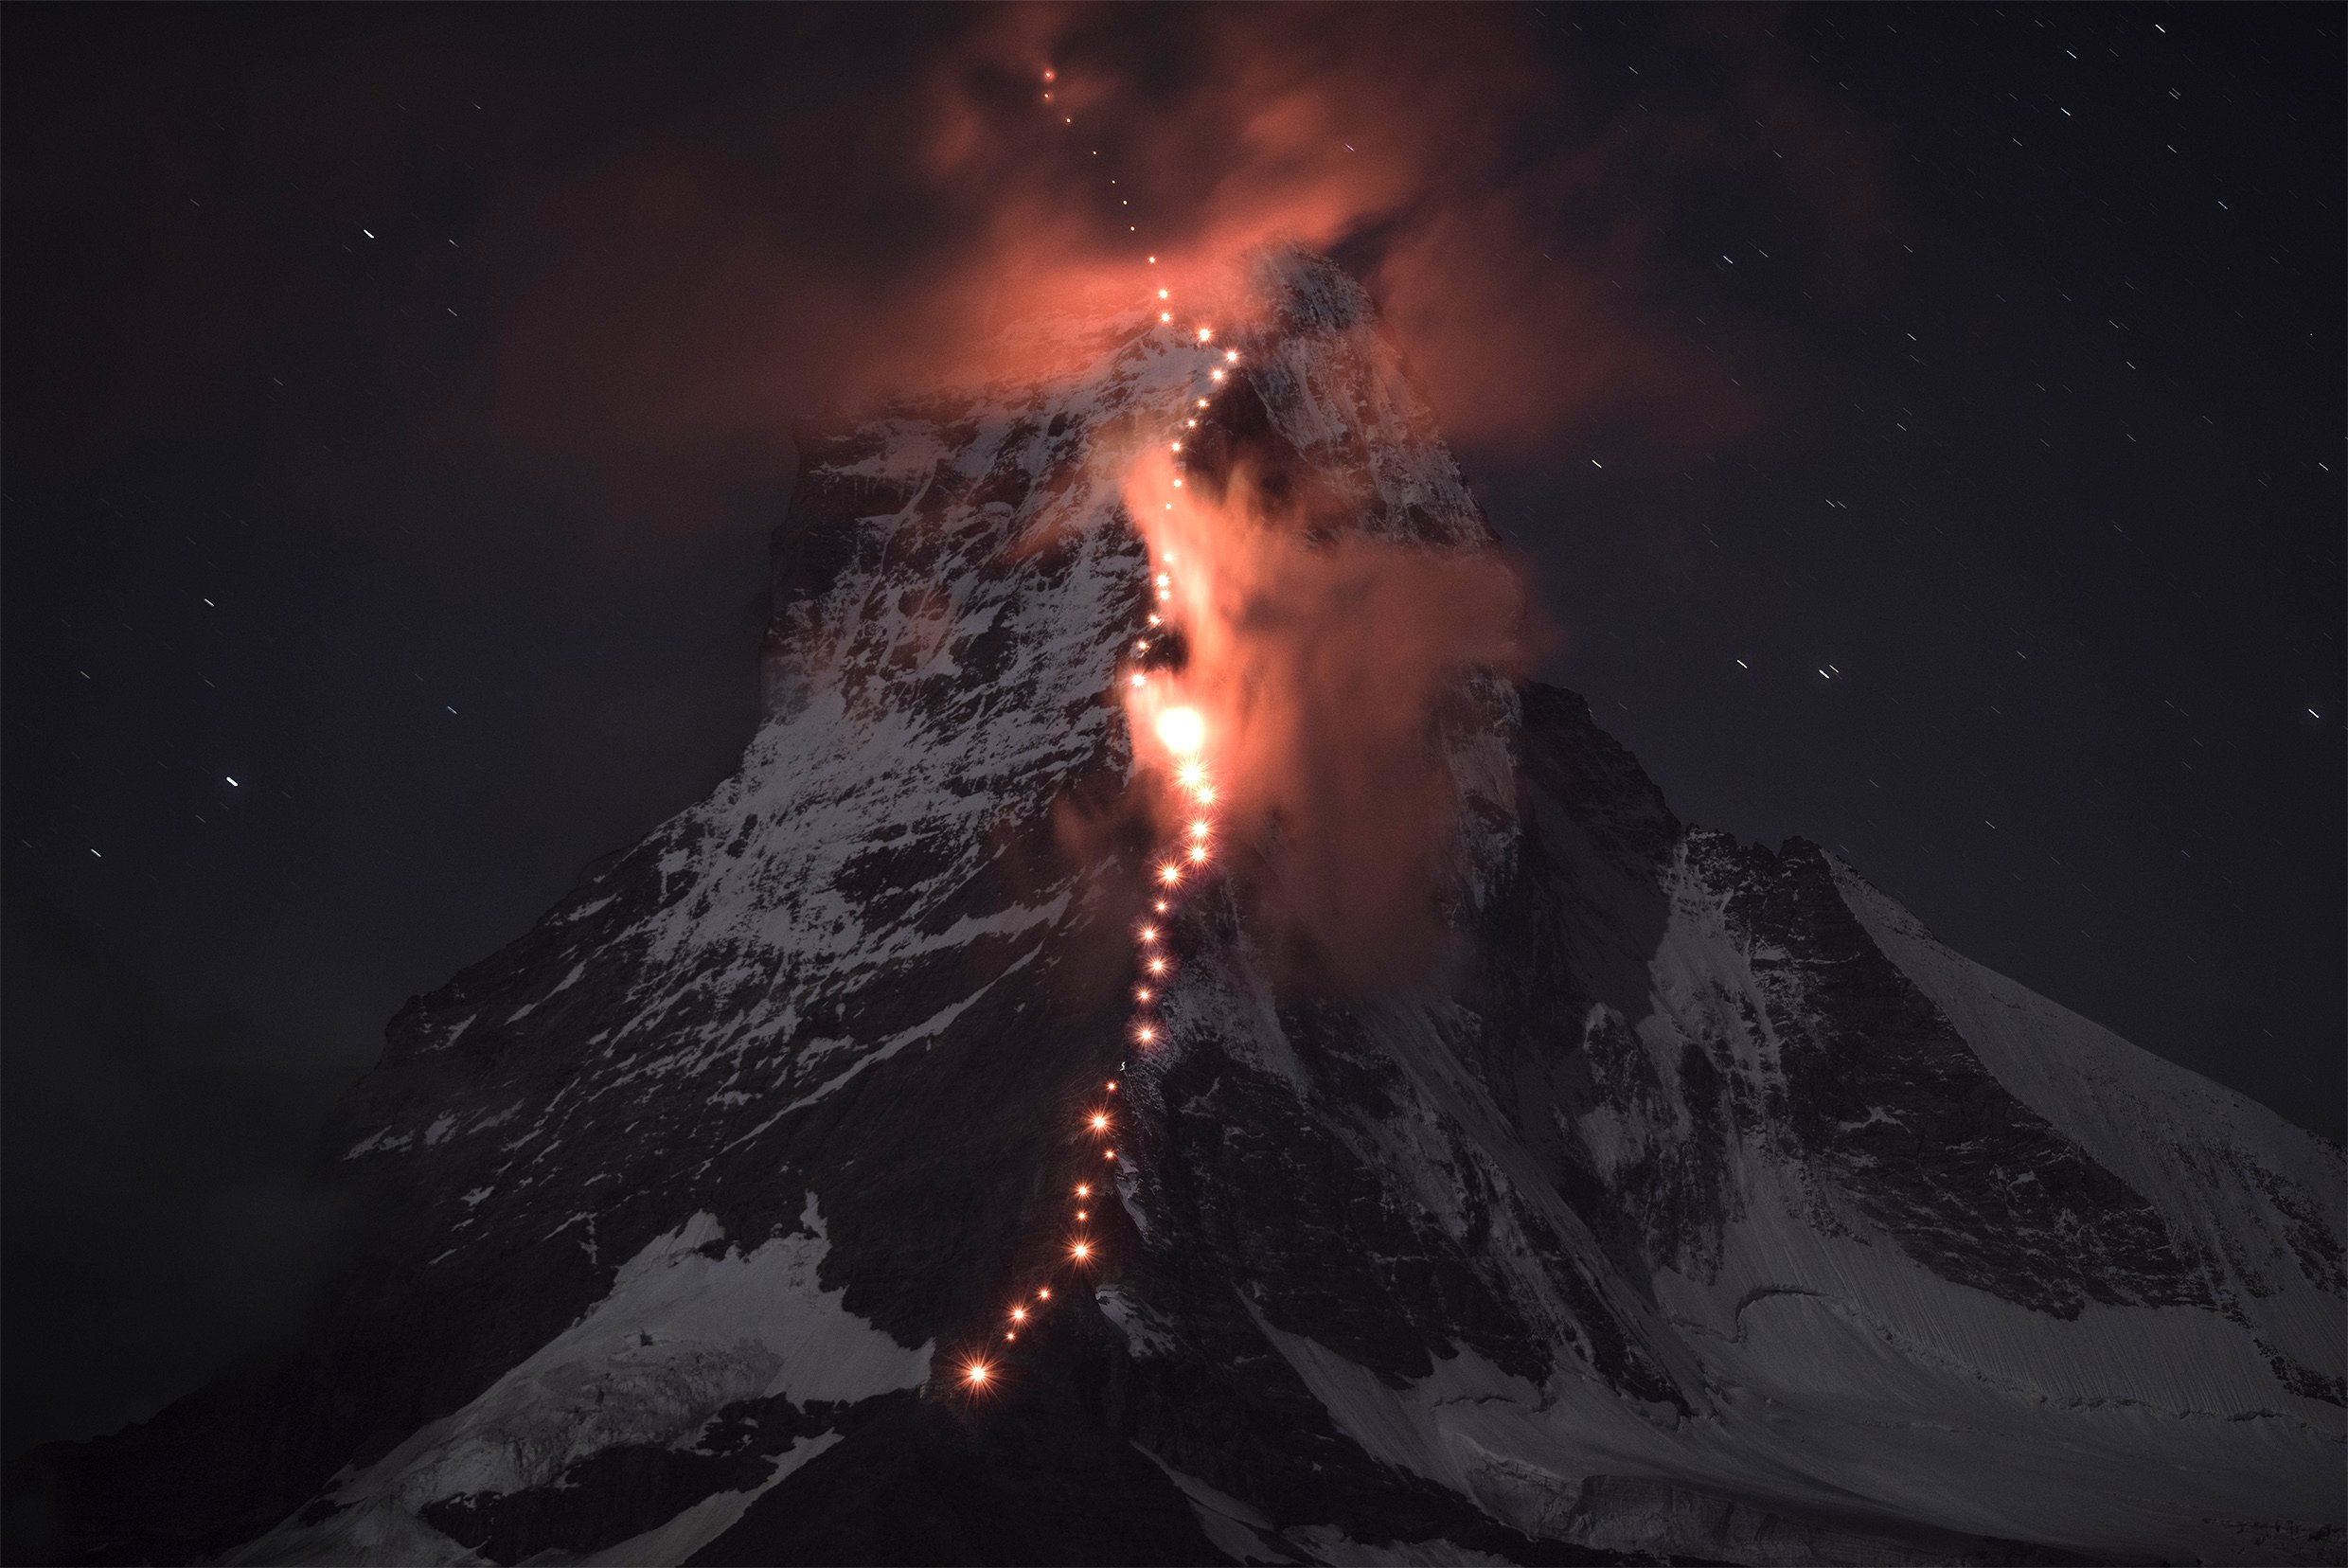 In preparation for the 150th anniversary of the first ascent of the Matterhorn, Swiss mountain sports specialist Mammut and mountain guides from the village of Zermatt transformed the spectacular summit into a shining stone icon as an anniversary gift to Zermatt on Sept. 16, 2014.